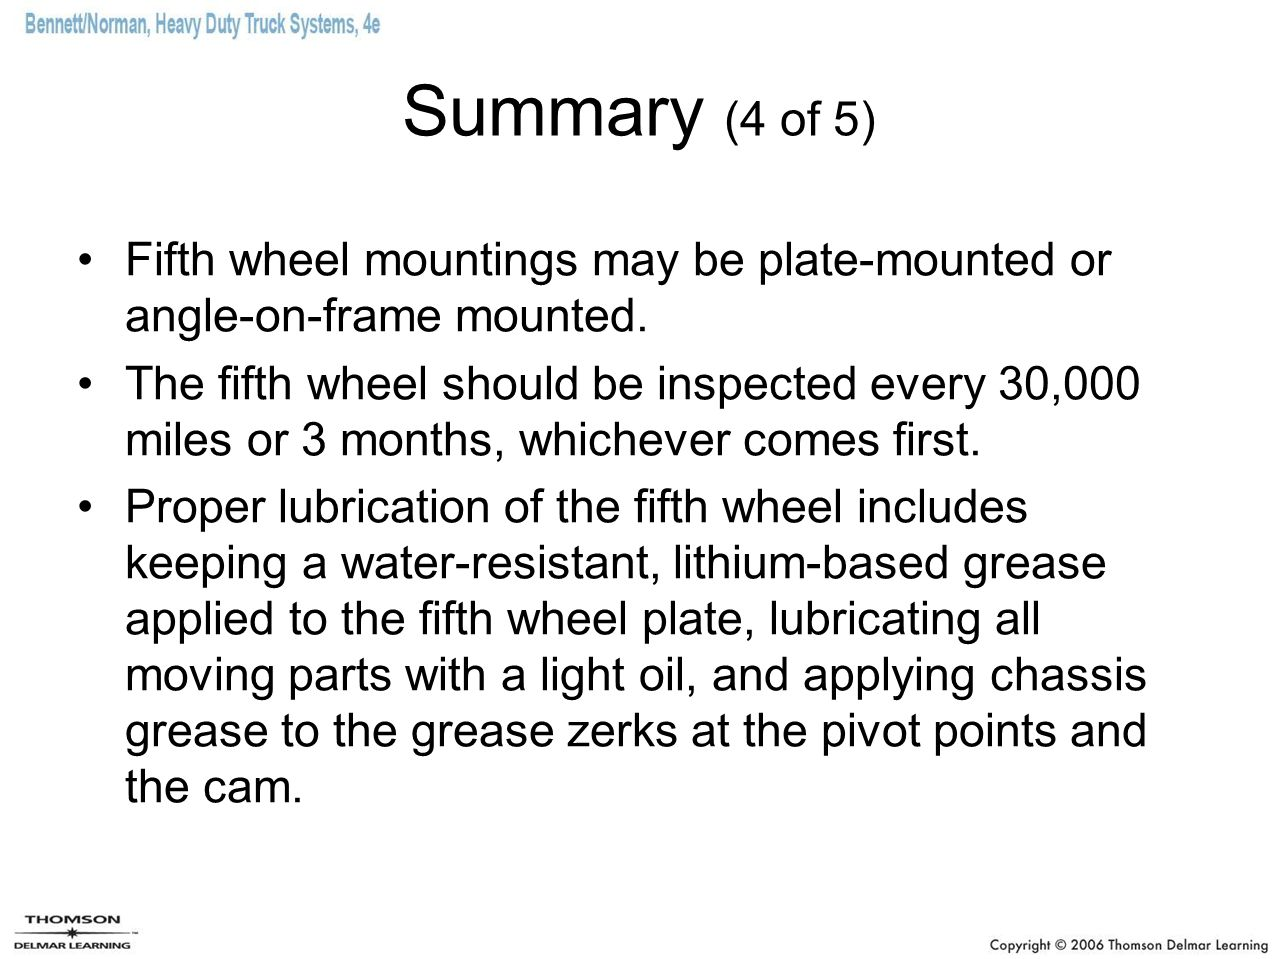 Summary (4 of 5) Fifth wheel mountings may be plate-mounted or angle-on-frame mounted.